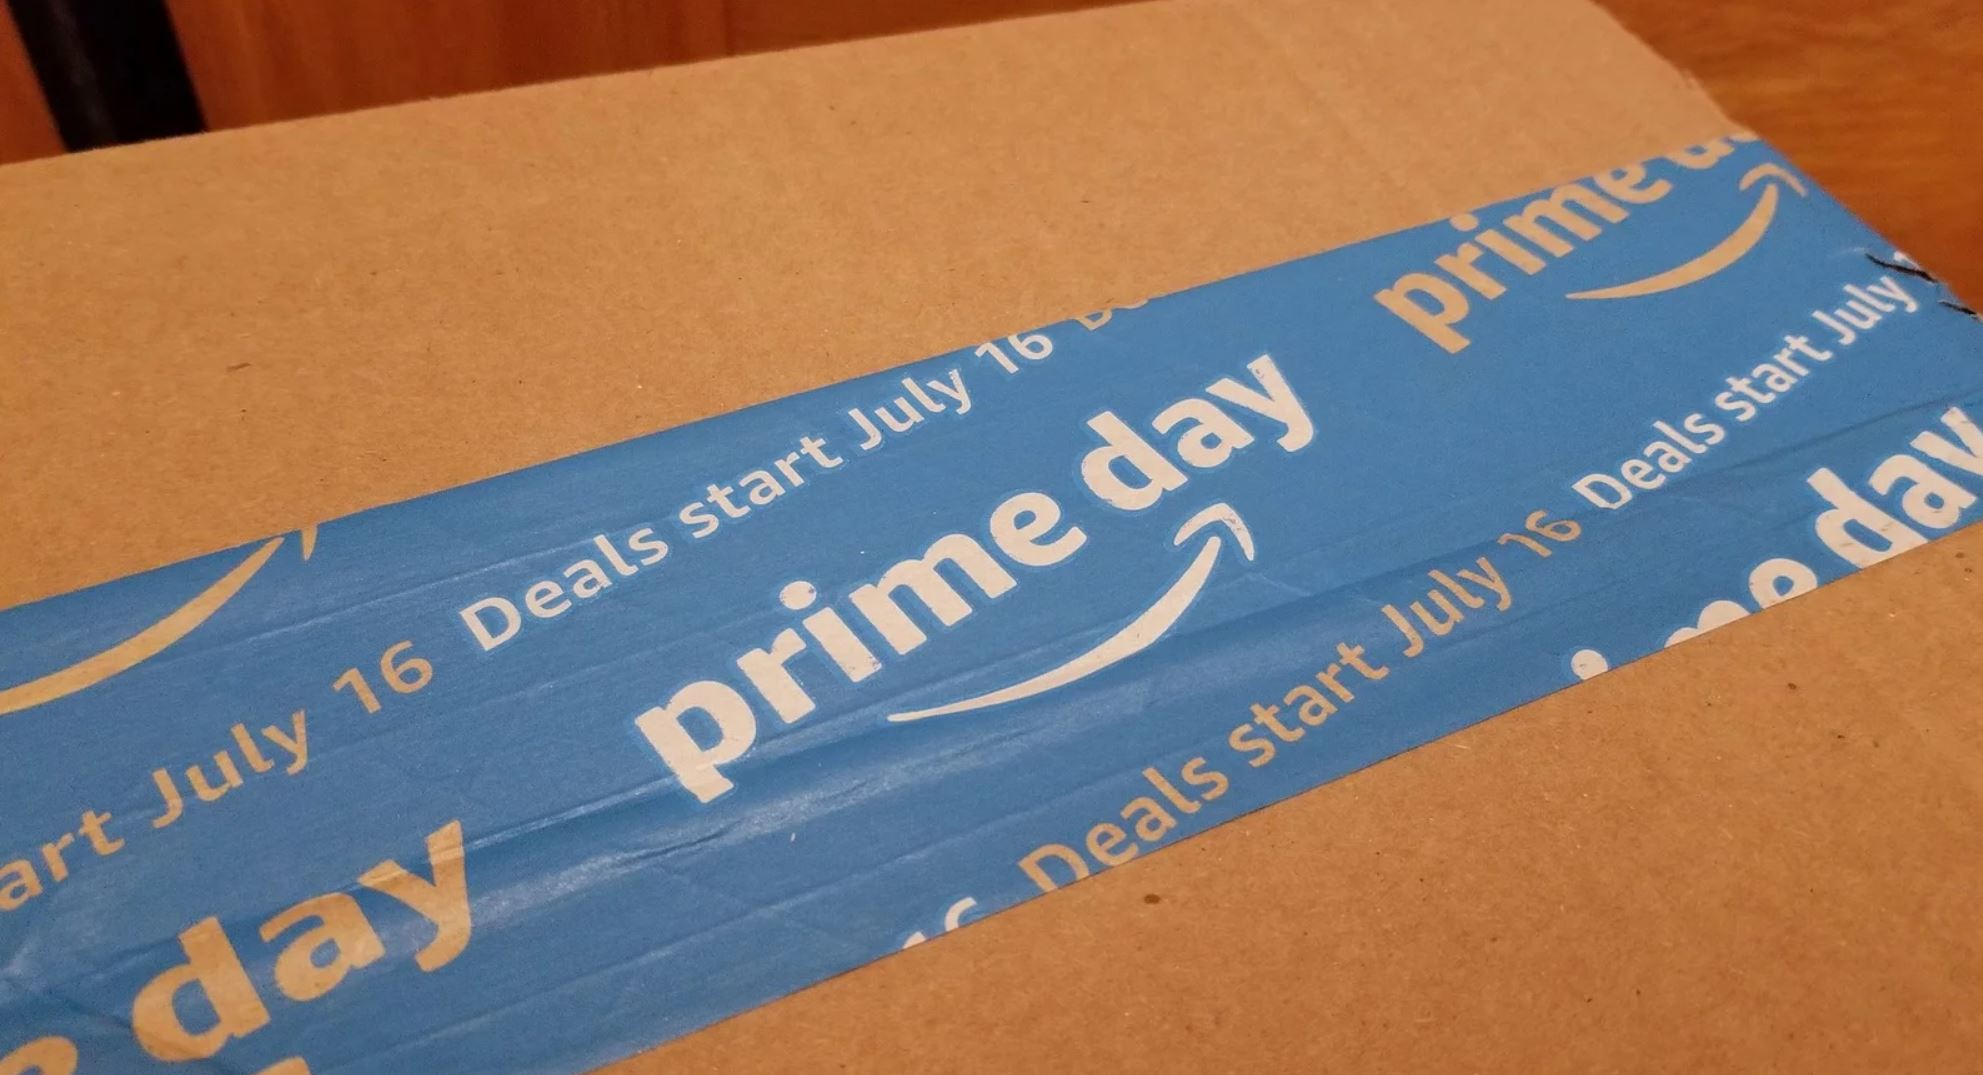 Amazon suffers tech crashes and strikes during Prime Day bonanza